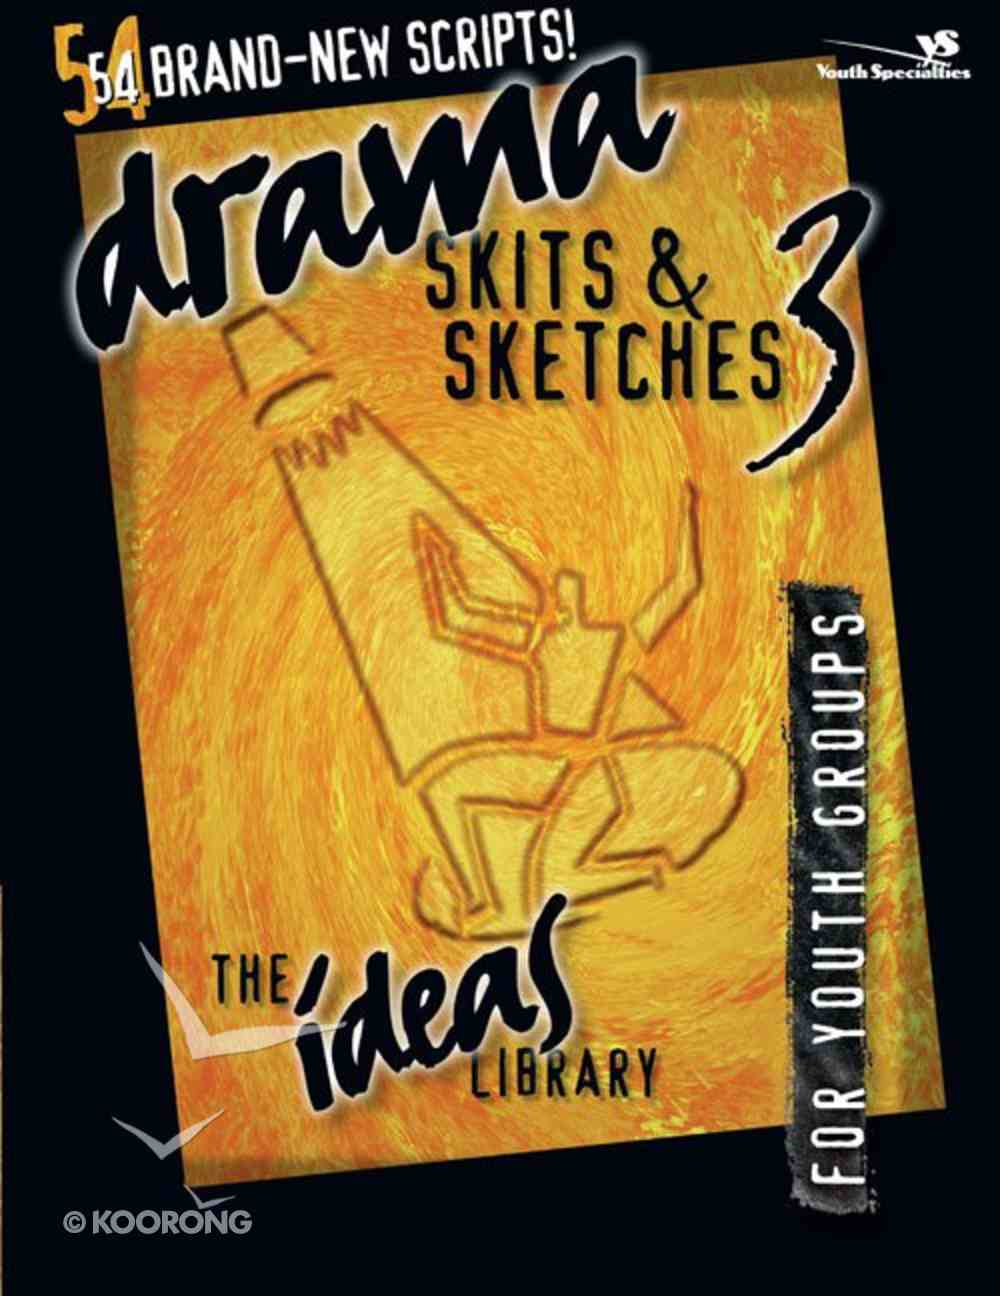 Ideas Library: Drama, Skits & Sketches 3 Paperback